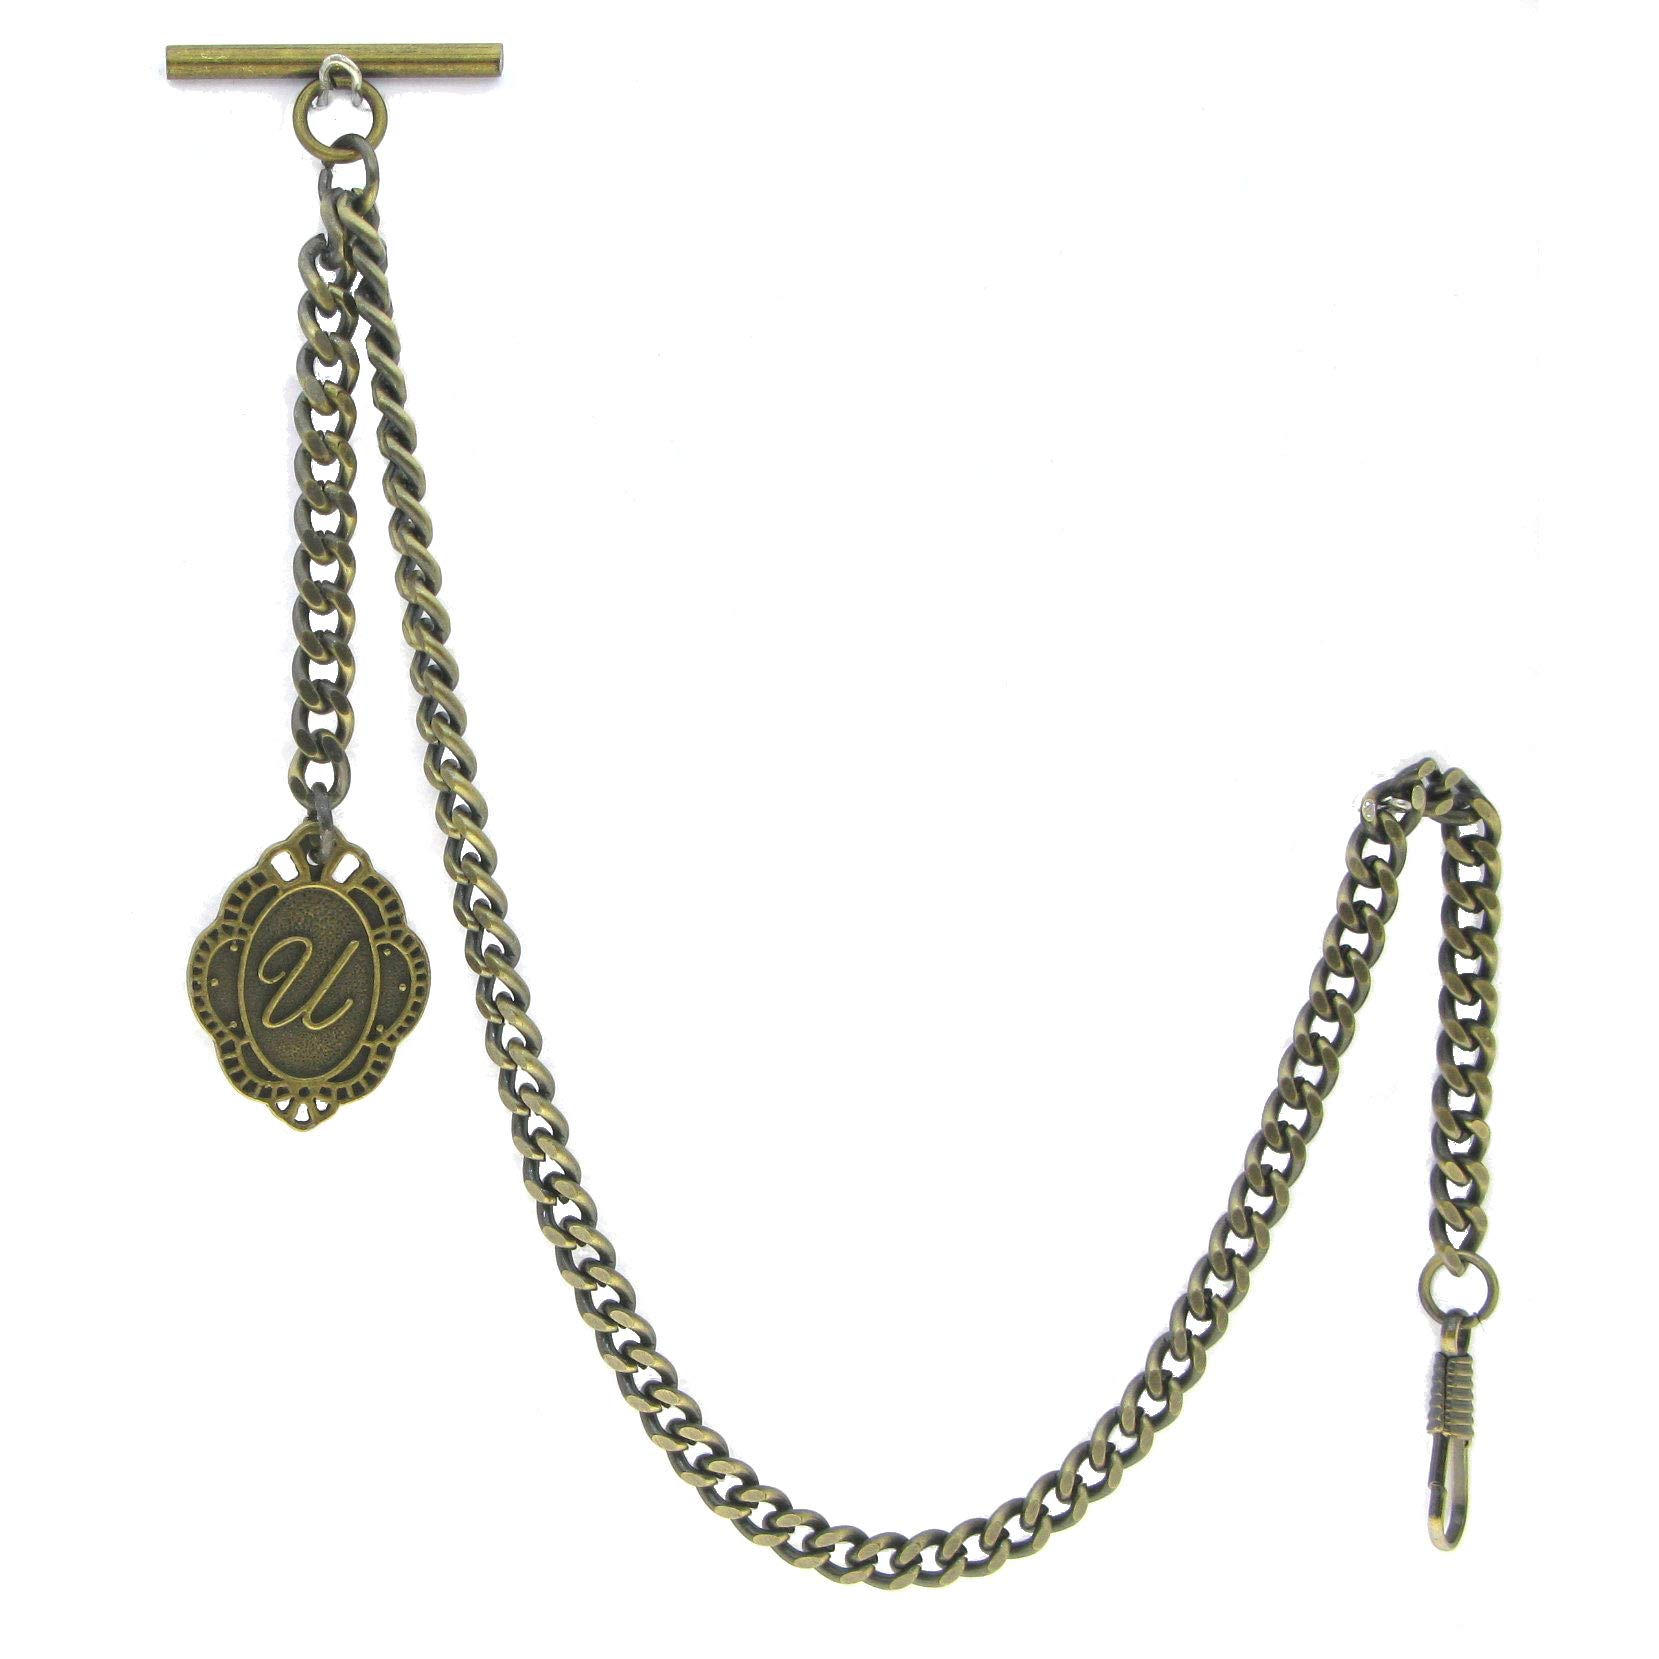 Albert Chain Pocket Watch Curb Link Chain Antique Brass Color + Alphabet U Initial Letter Fob T Bar AC91